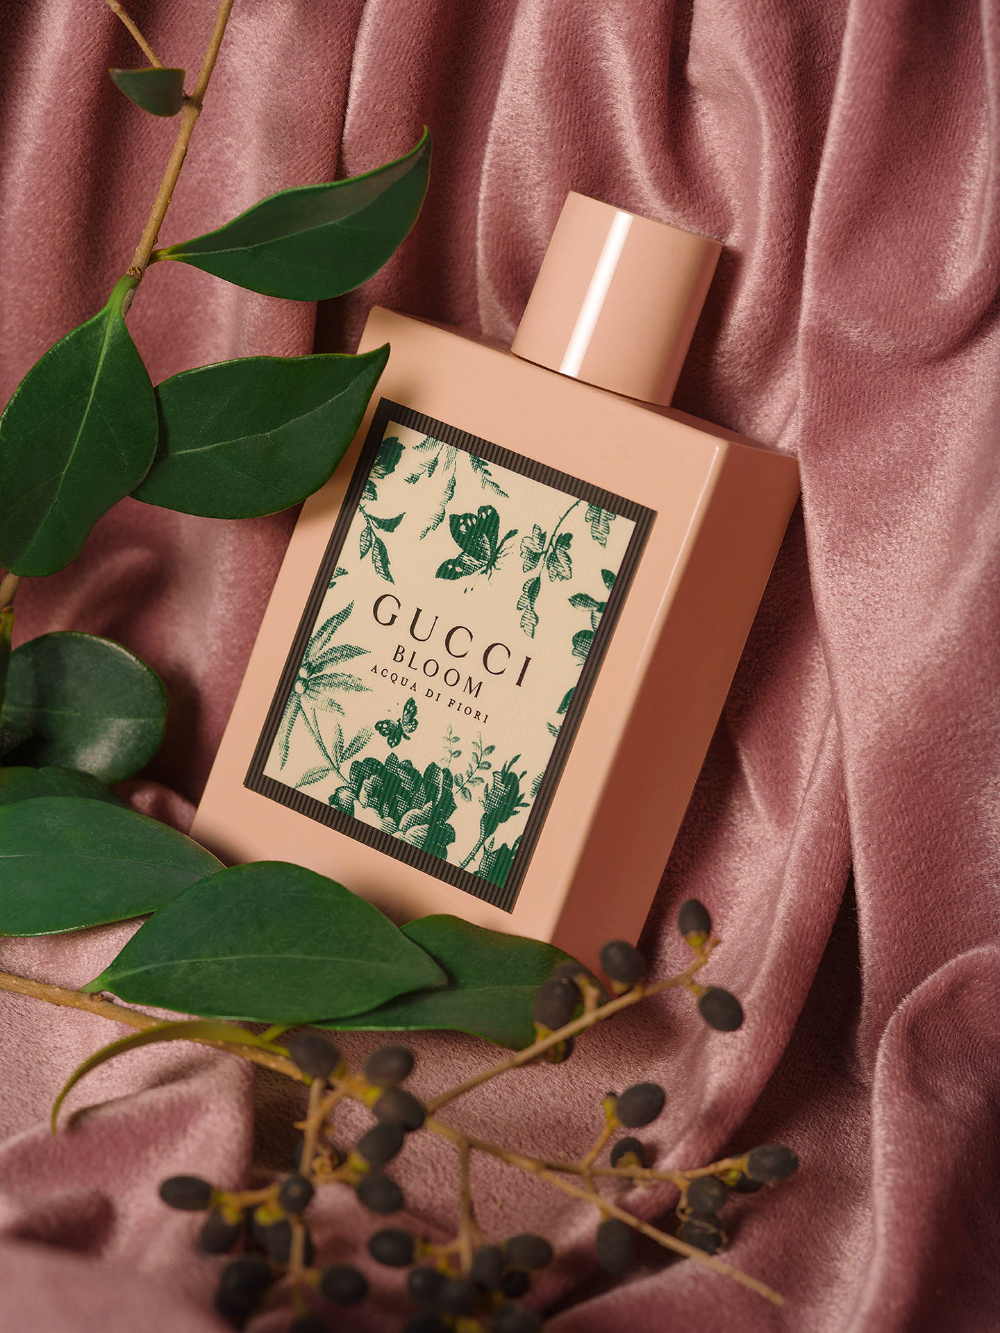 Gucci Bloom Ad Google Search Perfume Photography Gucci Perfume Bloom